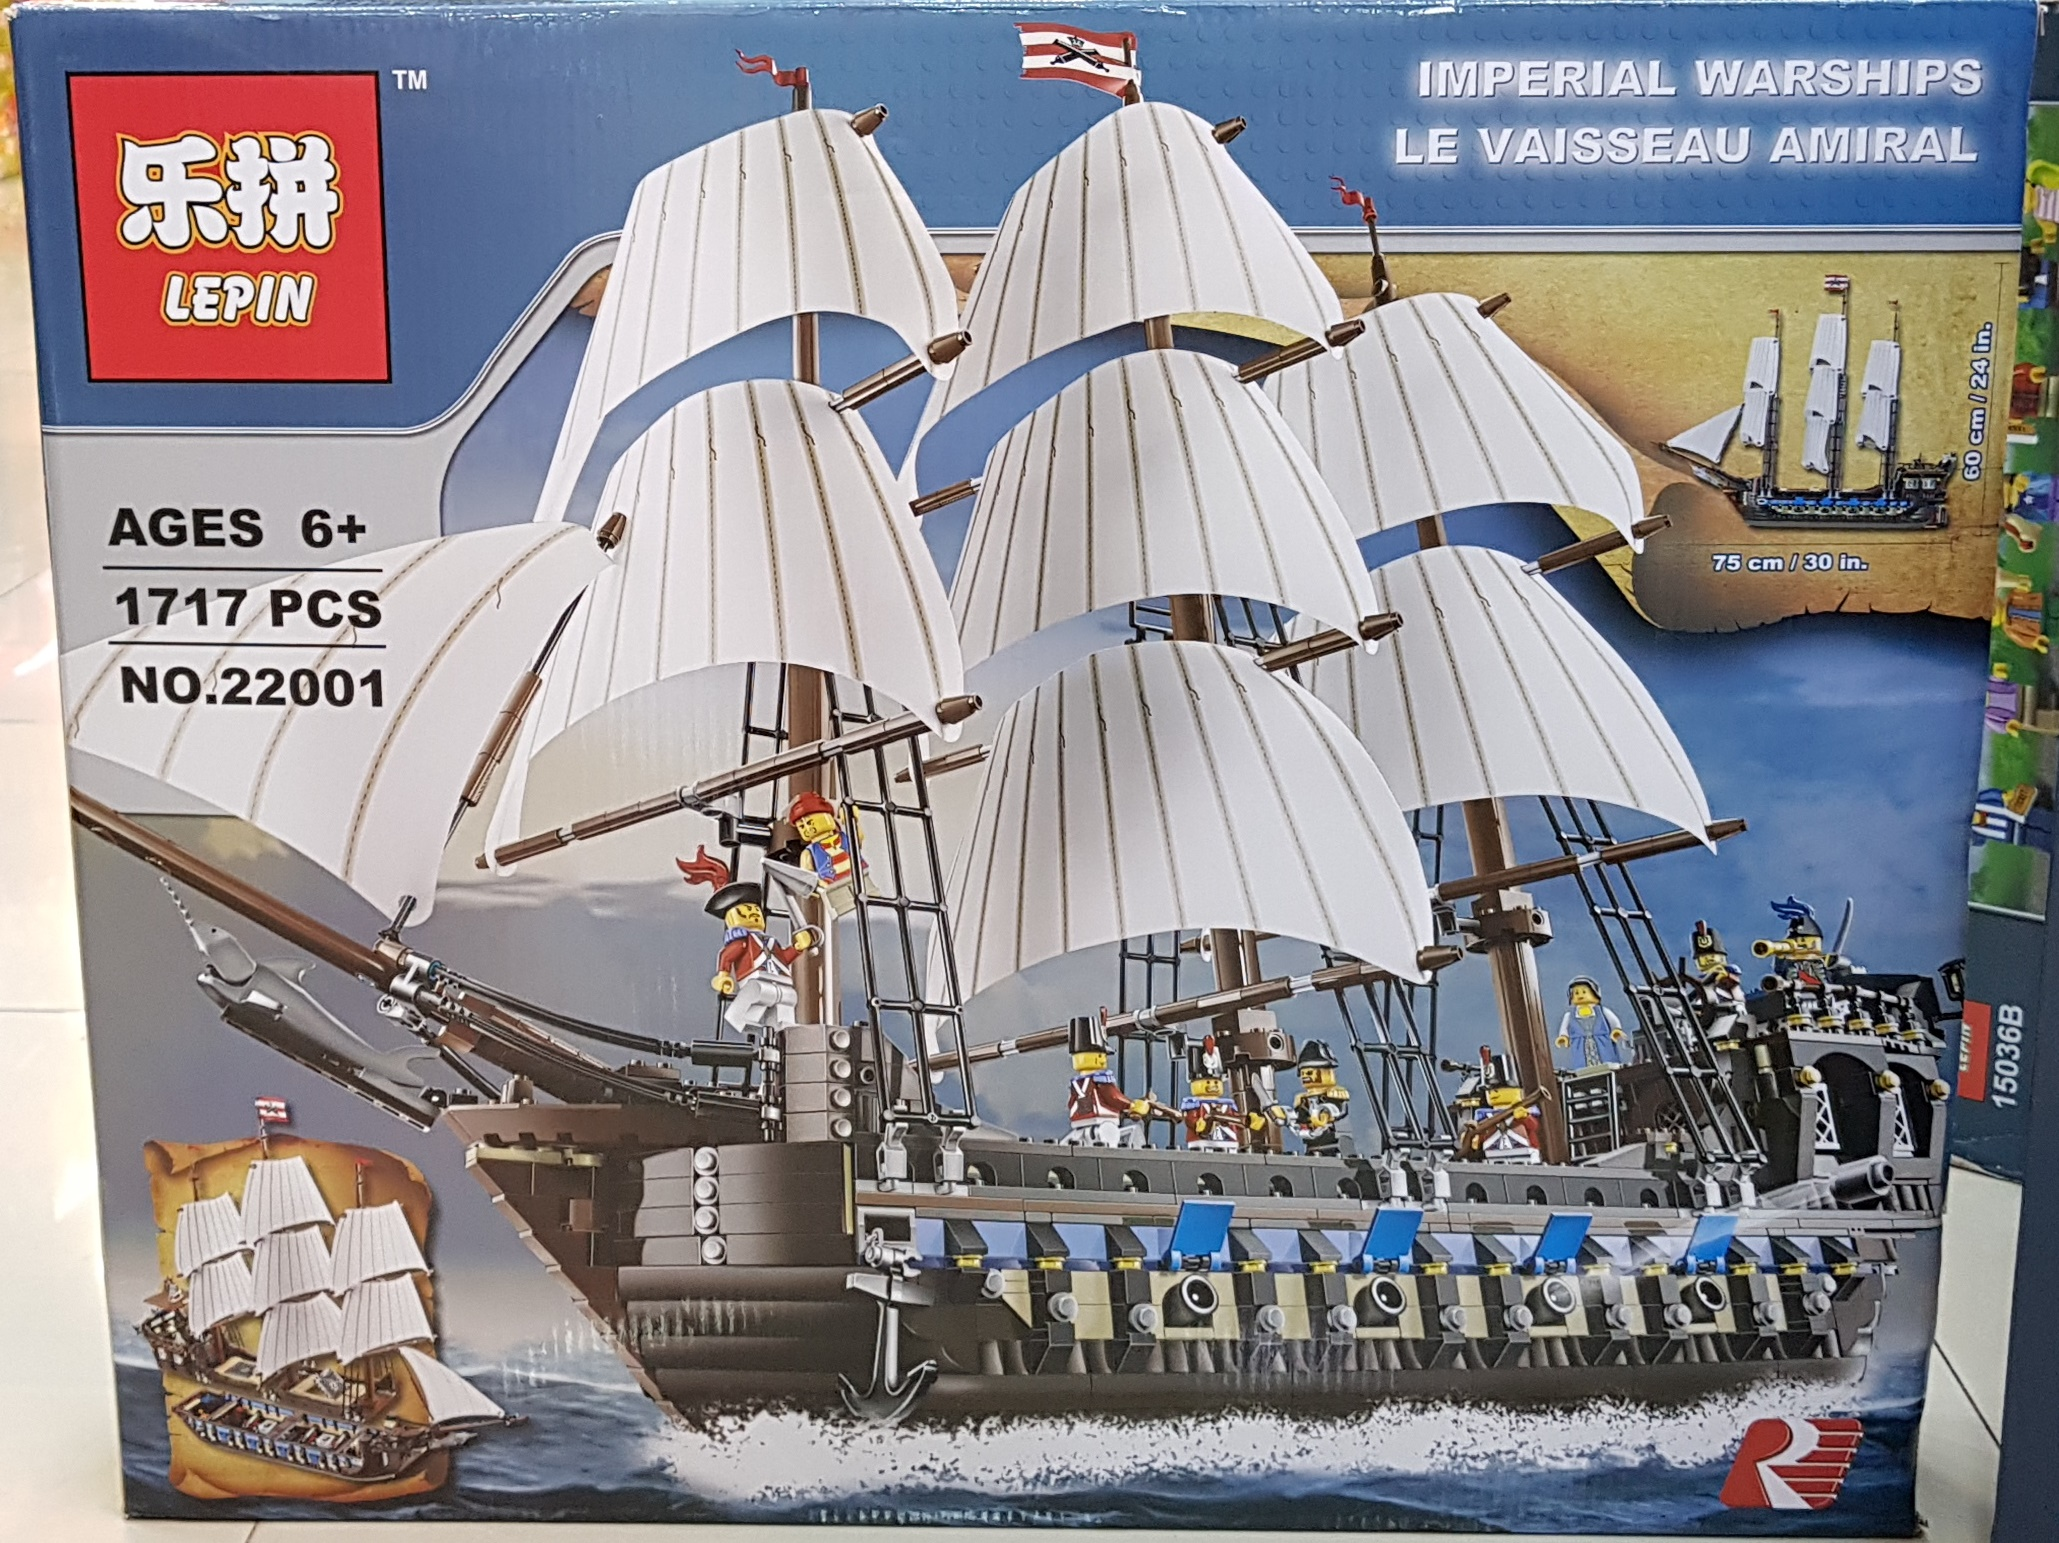 LEPIN IMPERIAL WARSHIPS LE VAISSEAU AMIRAL 22001 [1717ชิ้น]